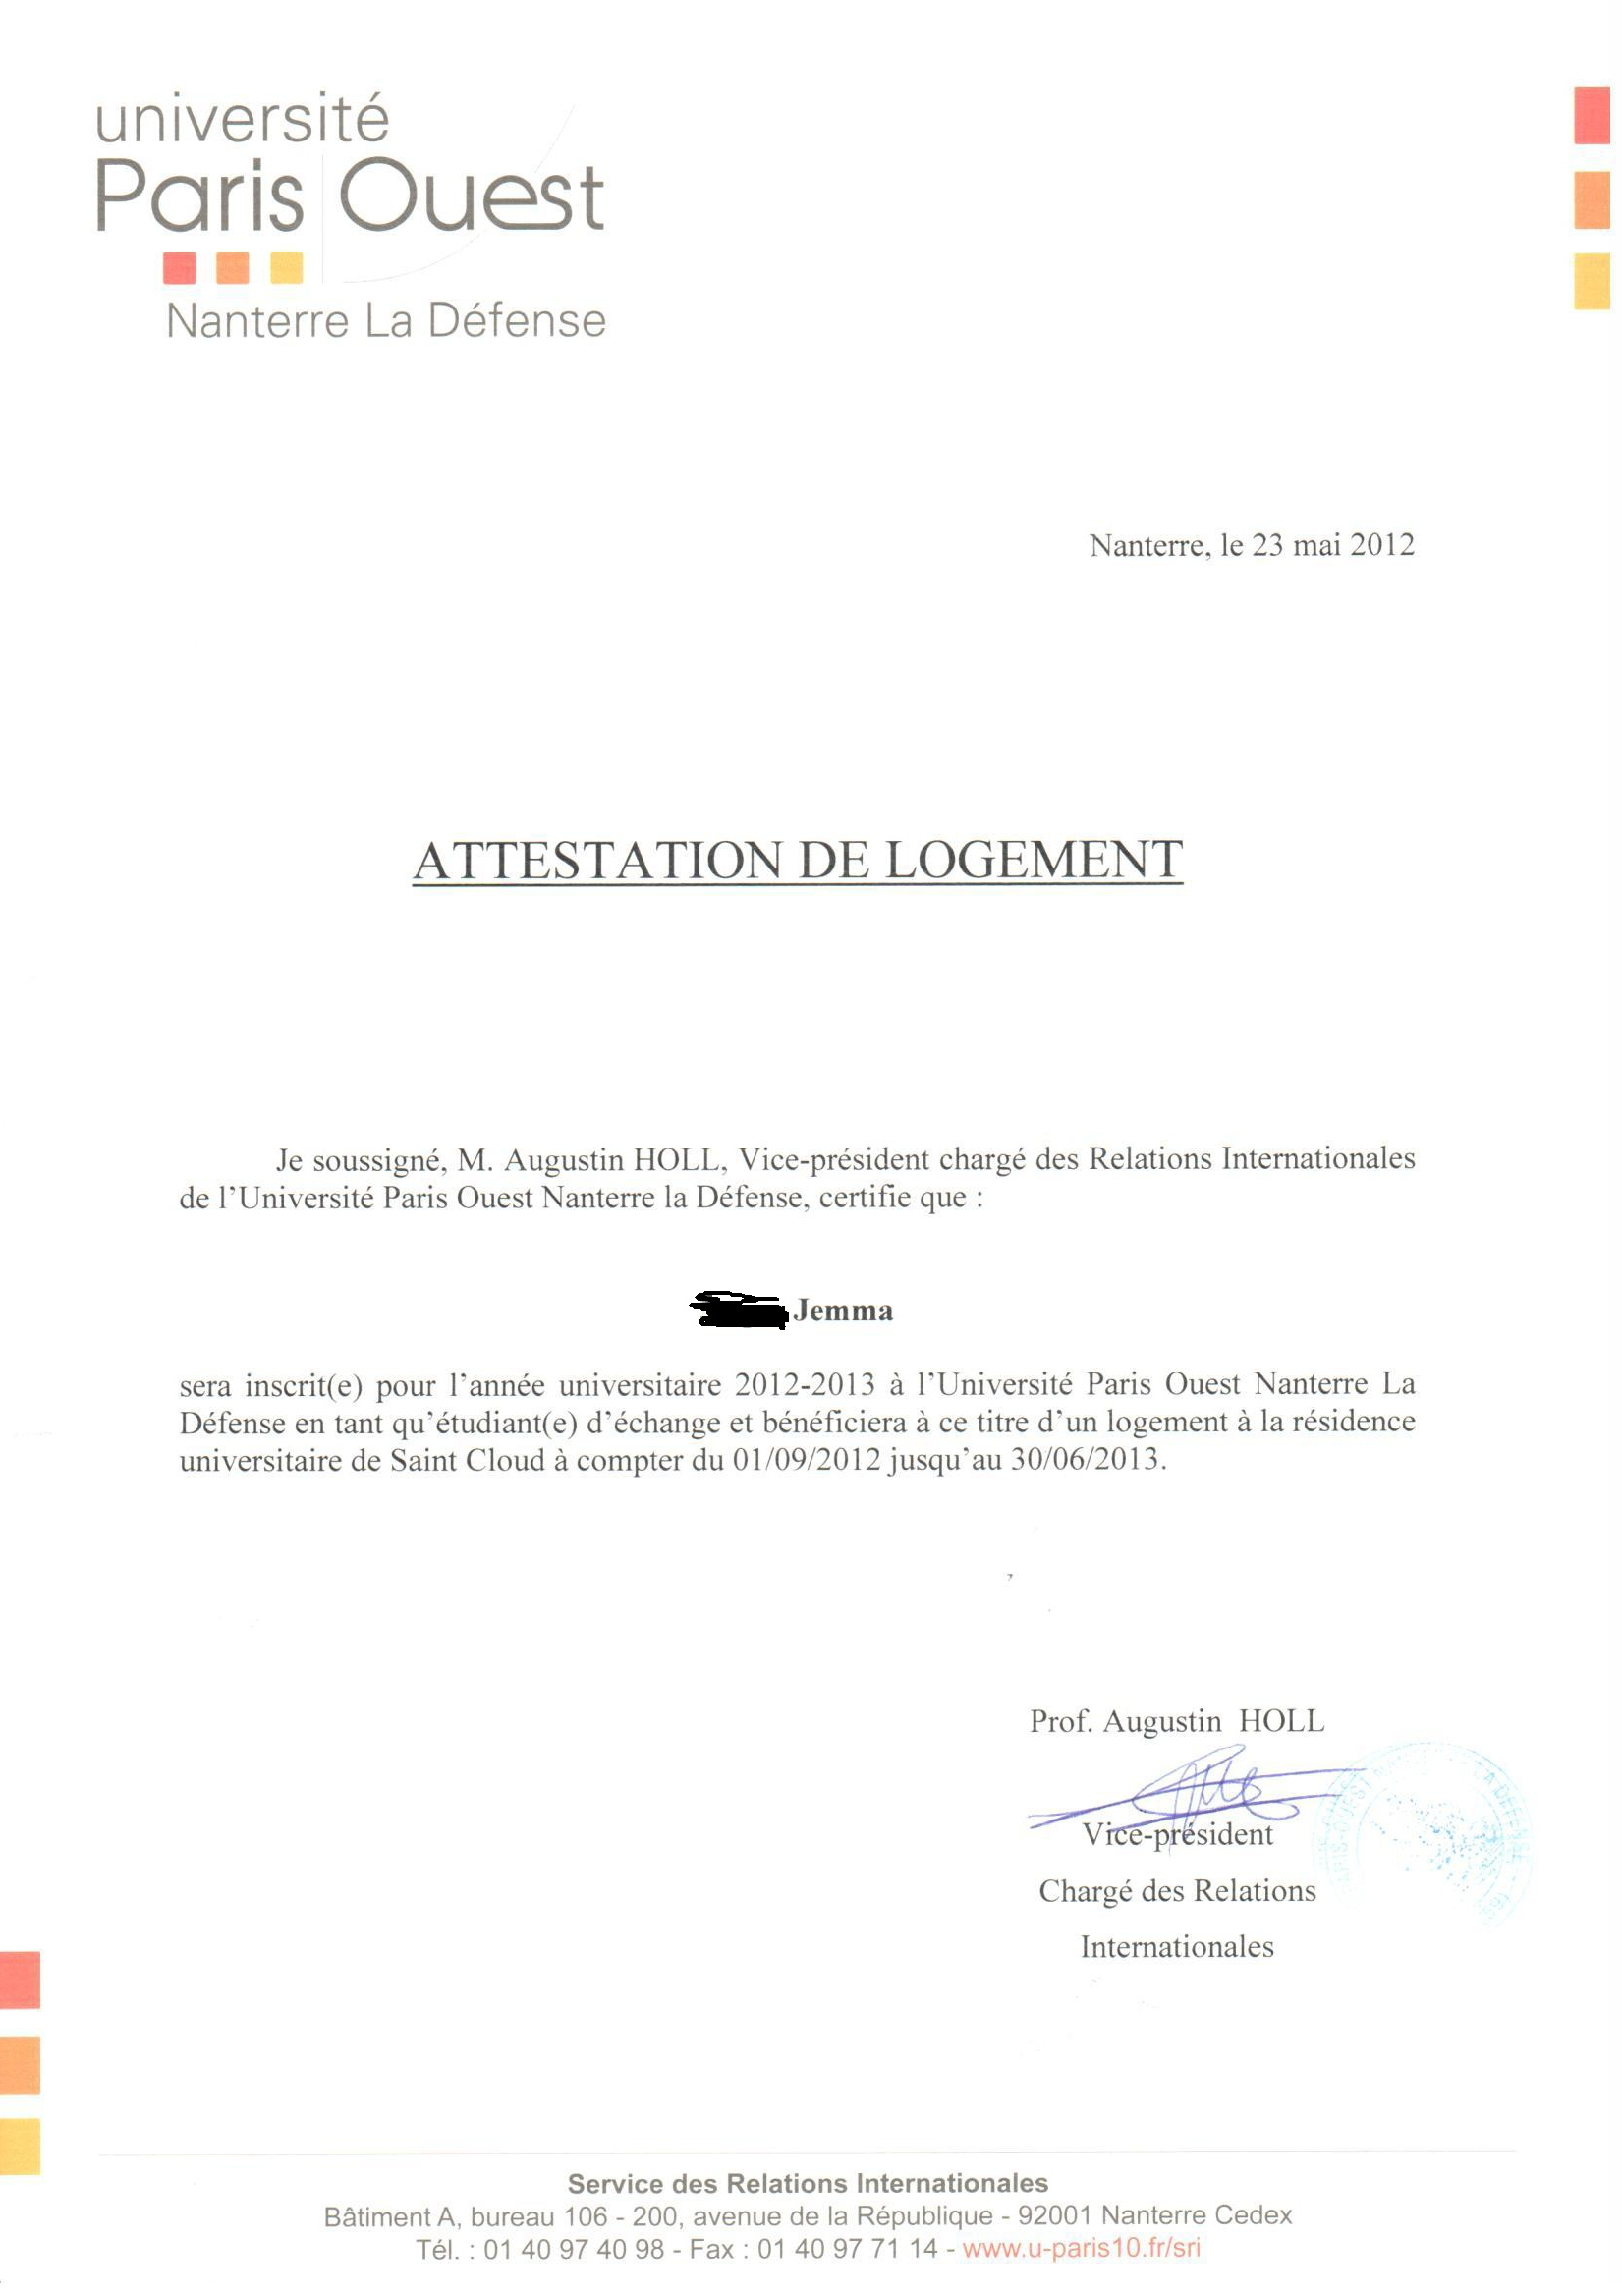 jemesque life la vie est belle oh and yes that second letter is indeed a confirmation of my accommodation at the reacutesidence saint cloud this was probably the biggest relief contained in